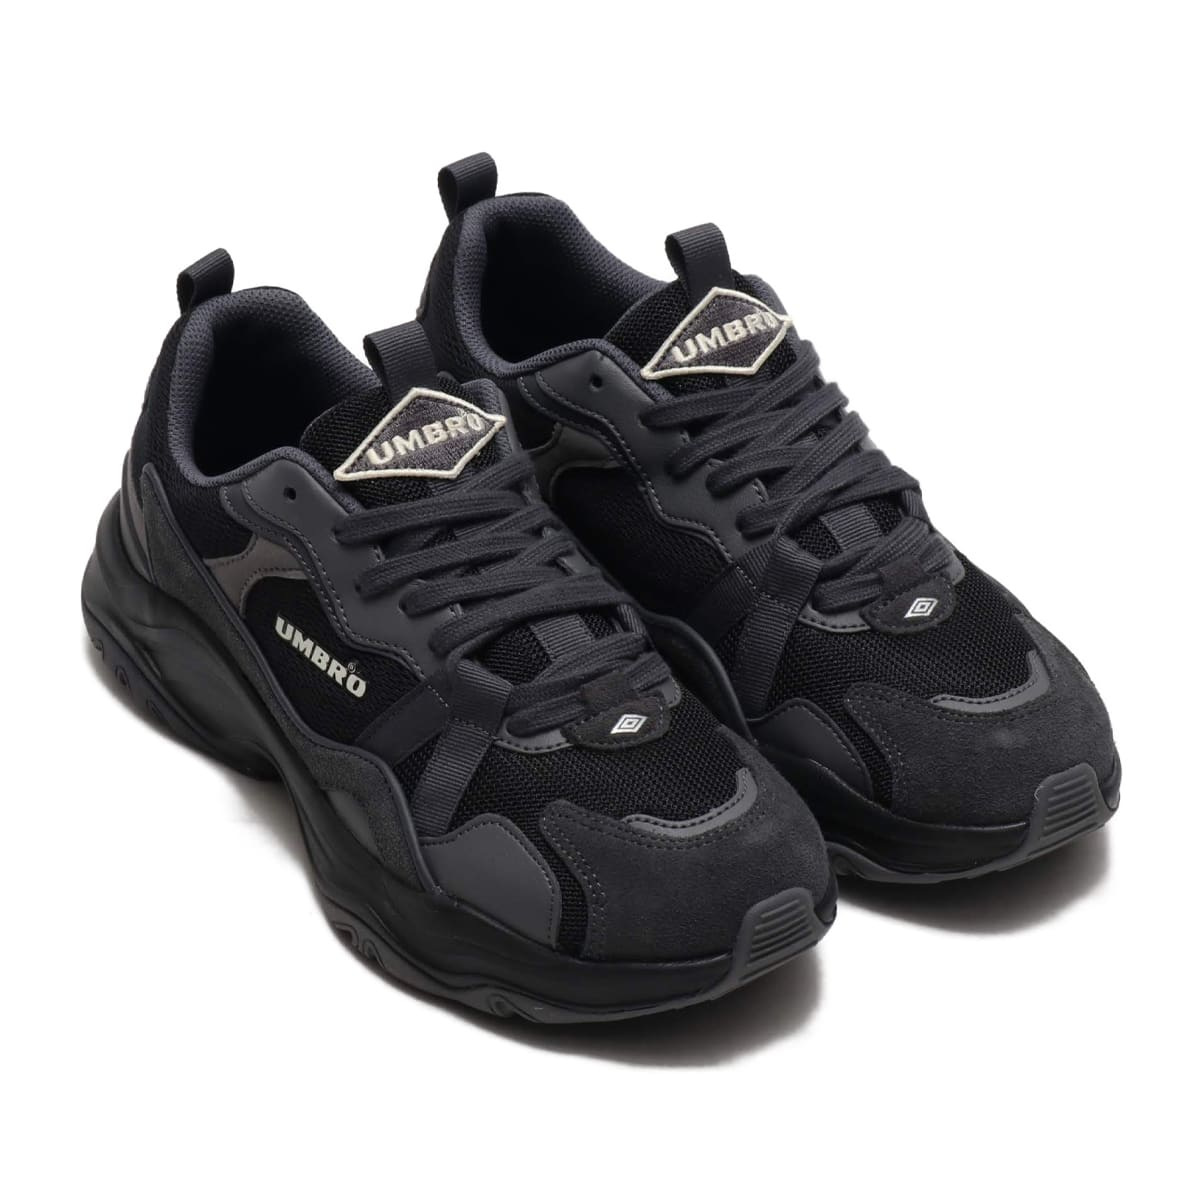 UMBRO BUMPY NEWBORN BLACK 20SS-S_photo_large